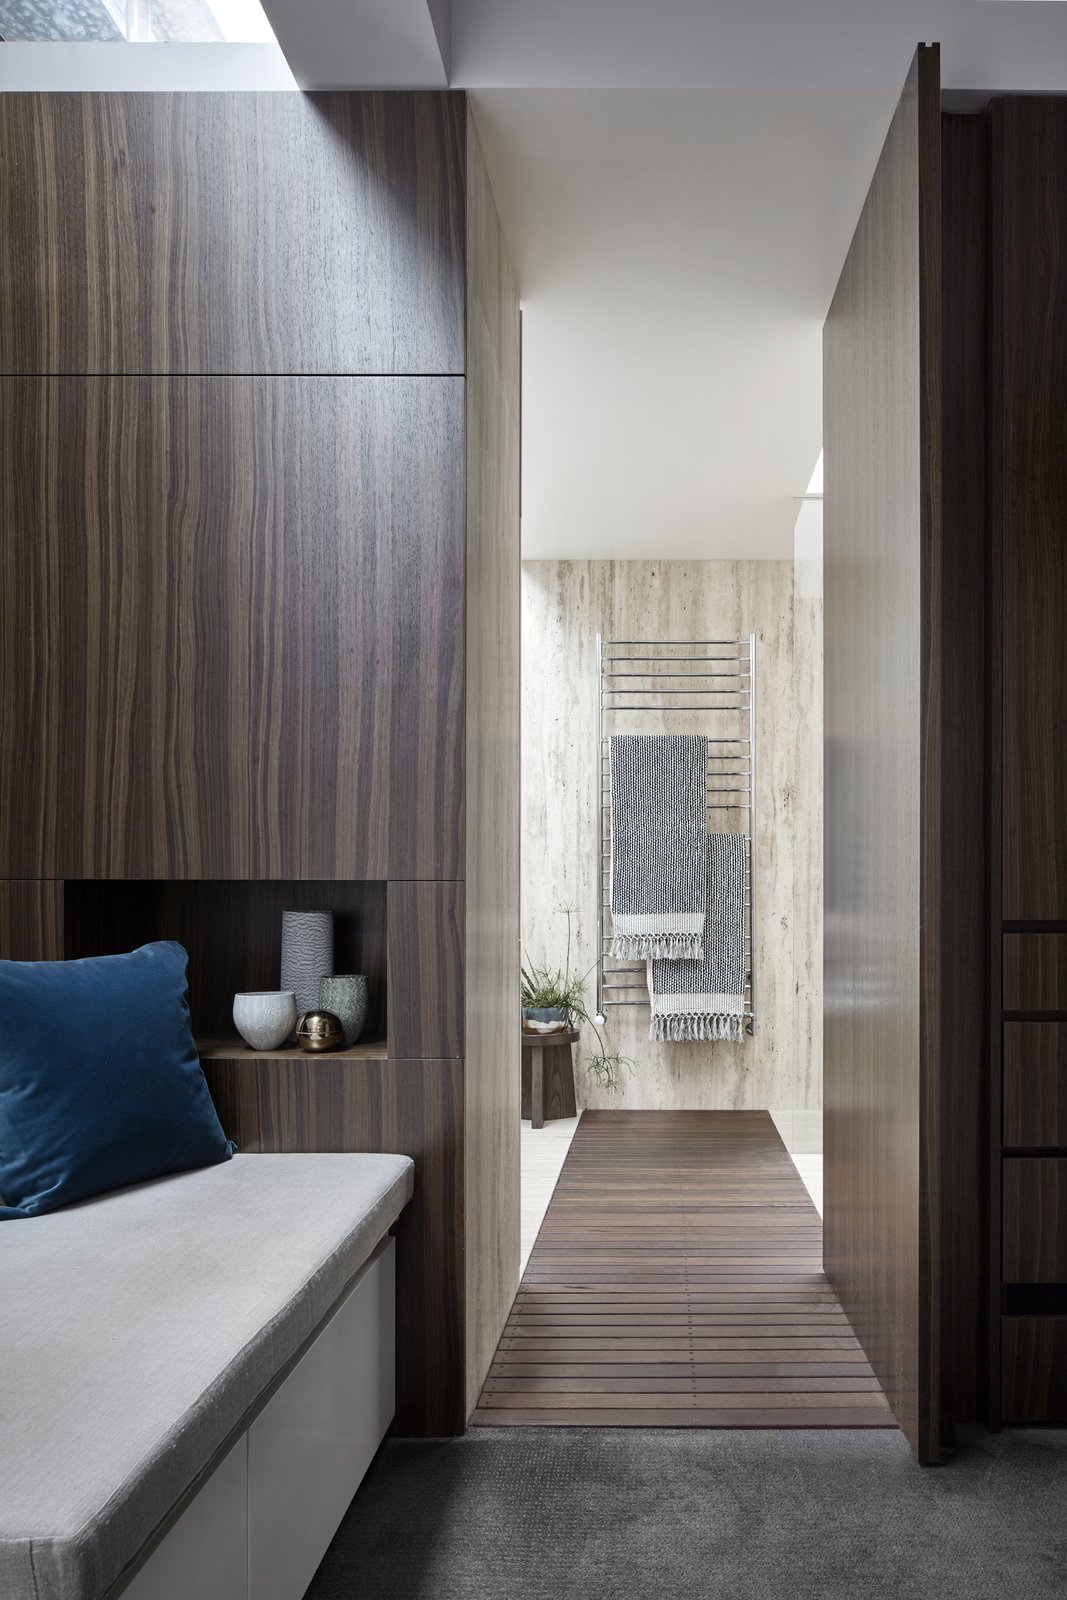 Bedroom, Bench, and Carpet Floor The view into the en-suite bathroom. The repeated use of travertine and timber creates consistency with the rest of the house.  Photo 9 of 11 in Courtyards Maximize Sunlight in This Renovated Australian Abode